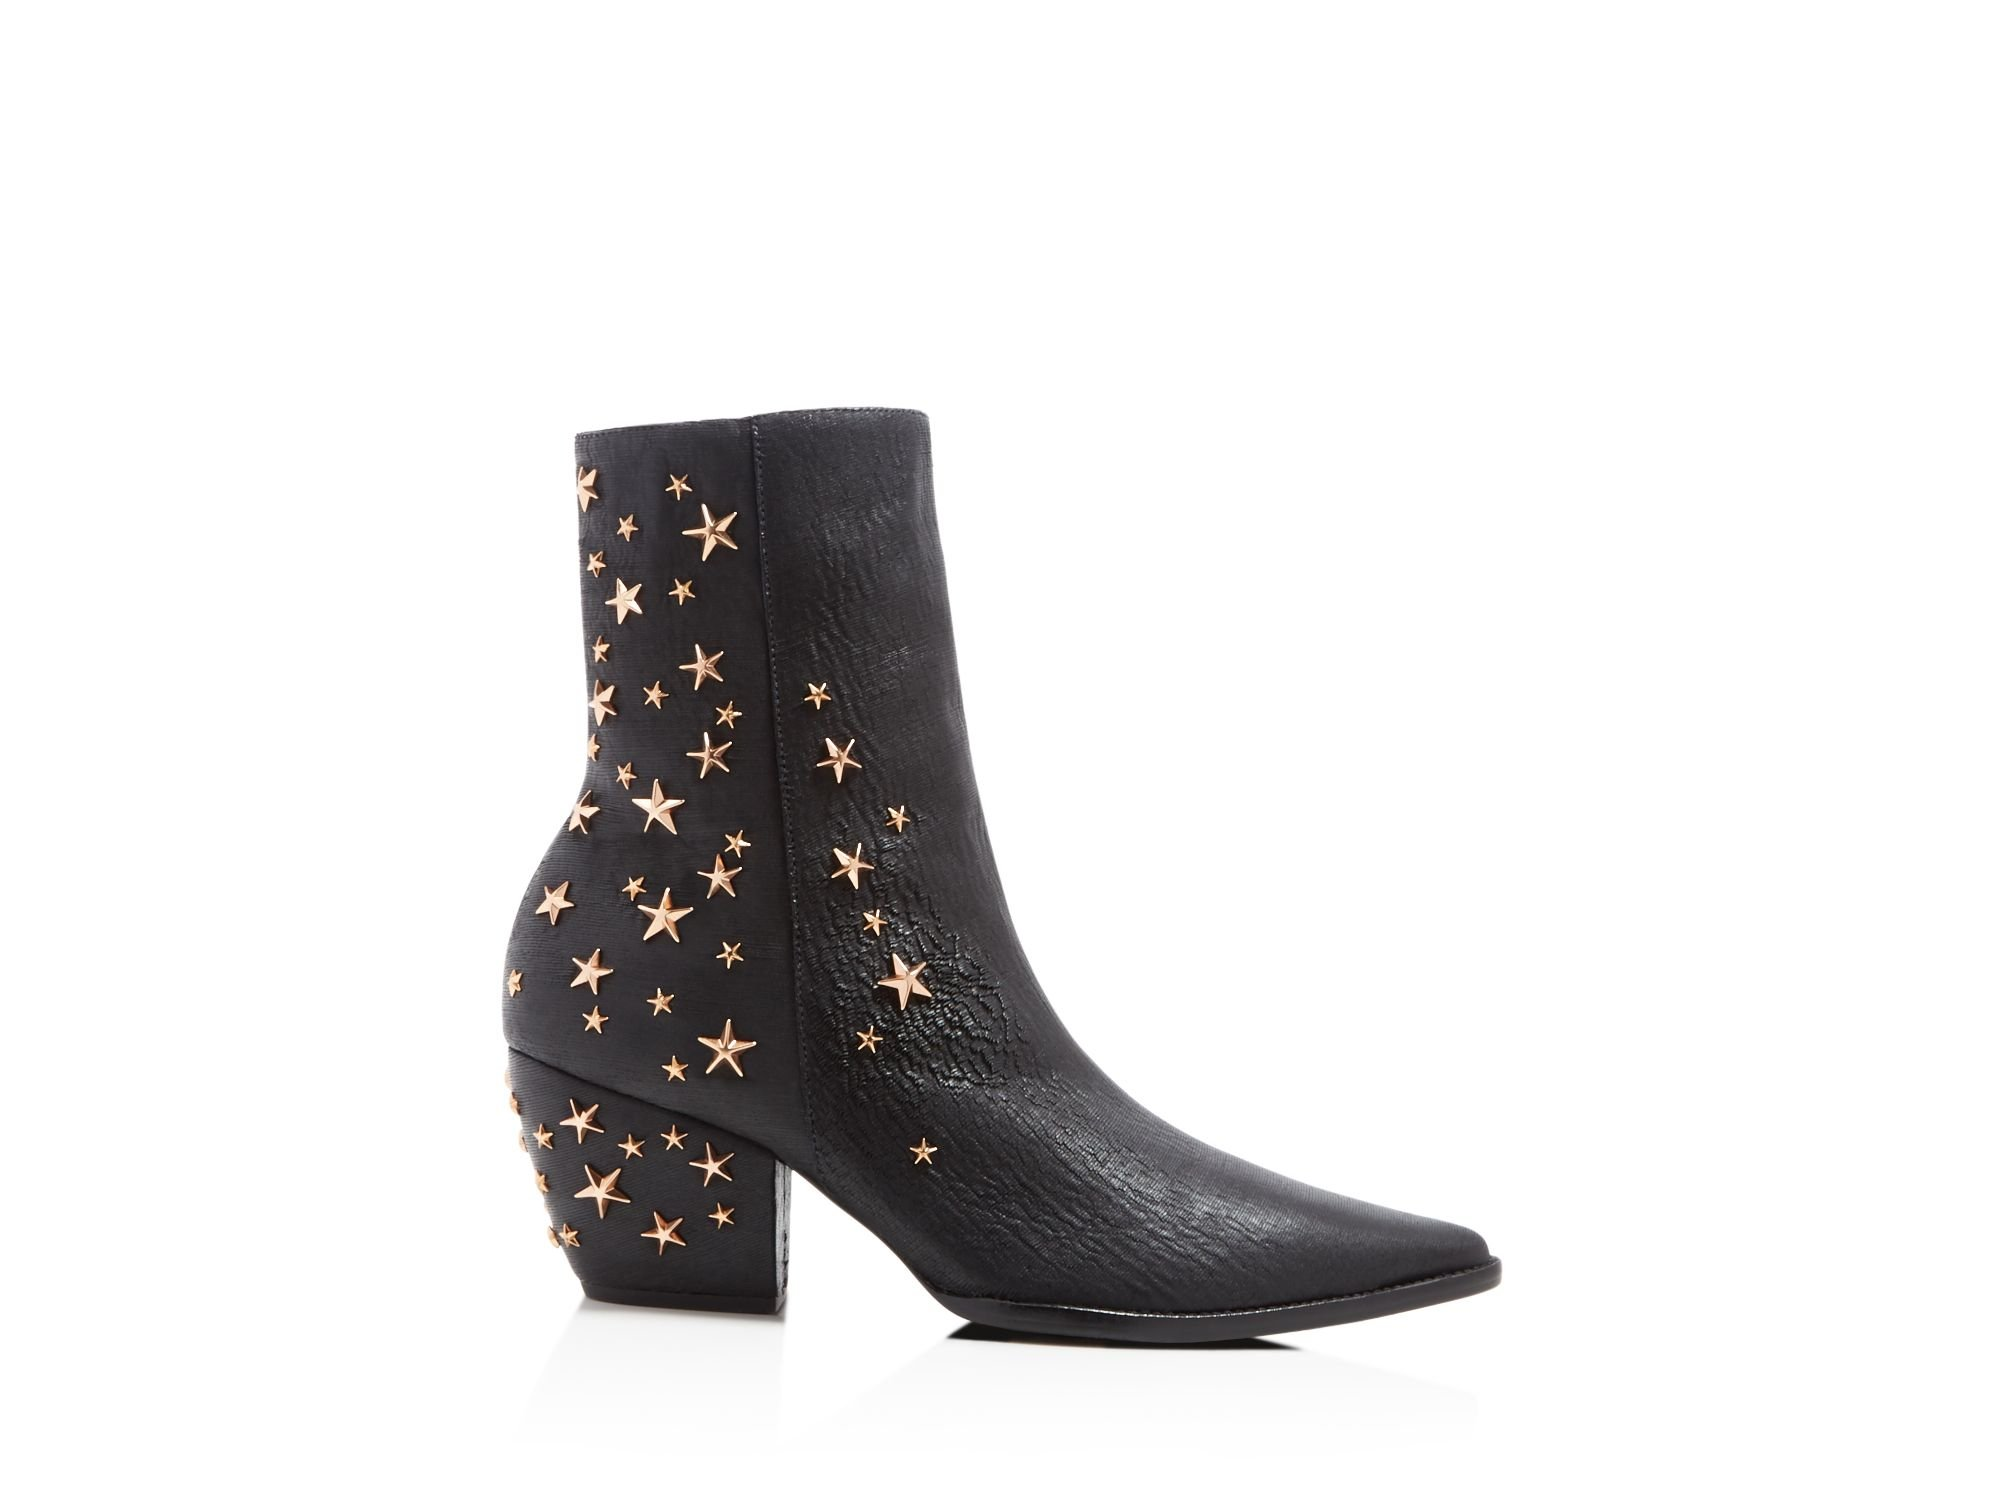 matisse kate bosworth studded boots in